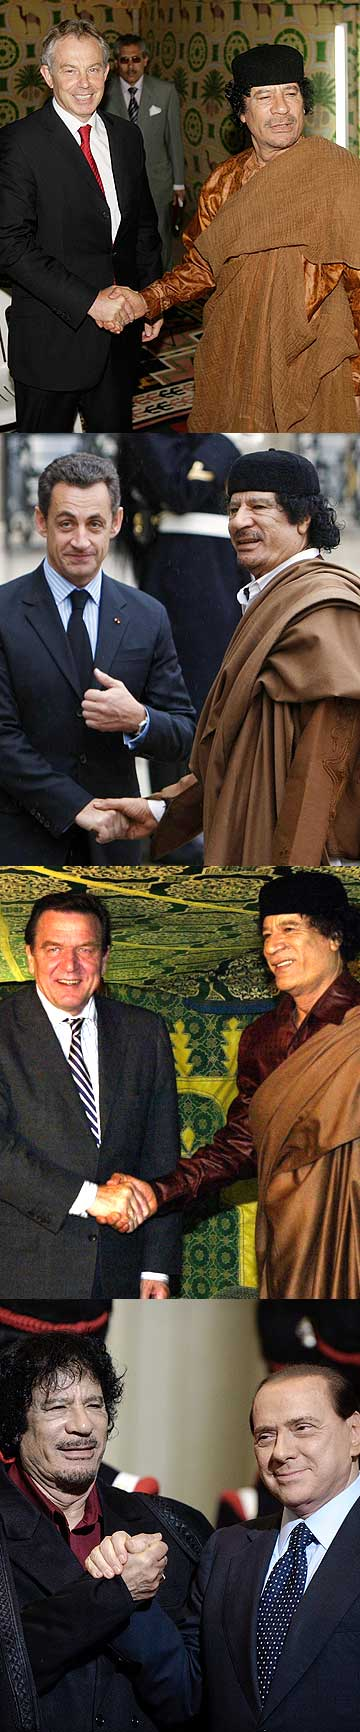 Various European leaders greet Libya's Muammar Gaddafi. From top are British PM Tony Blair (2007), French President Nicolas Sarkozy (2007), German Chancellor Gerhard Schroeder (2004) and Italian Prime Minister Silvio Berlusconi (2009).